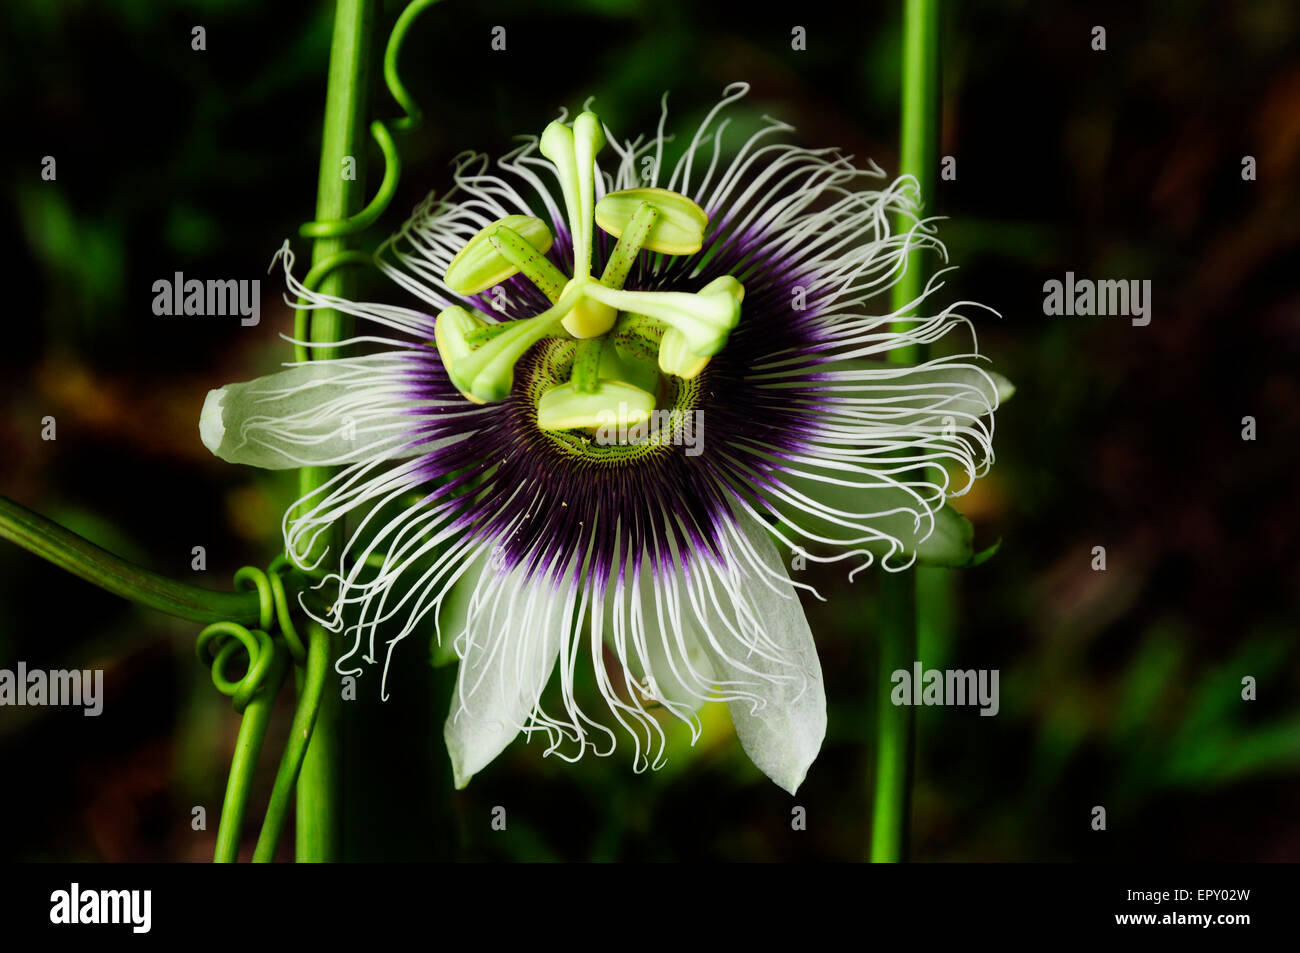 A white and purple passion fruit flower in a natural setting stock a white and purple passion fruit flower in a natural setting dhlflorist Images